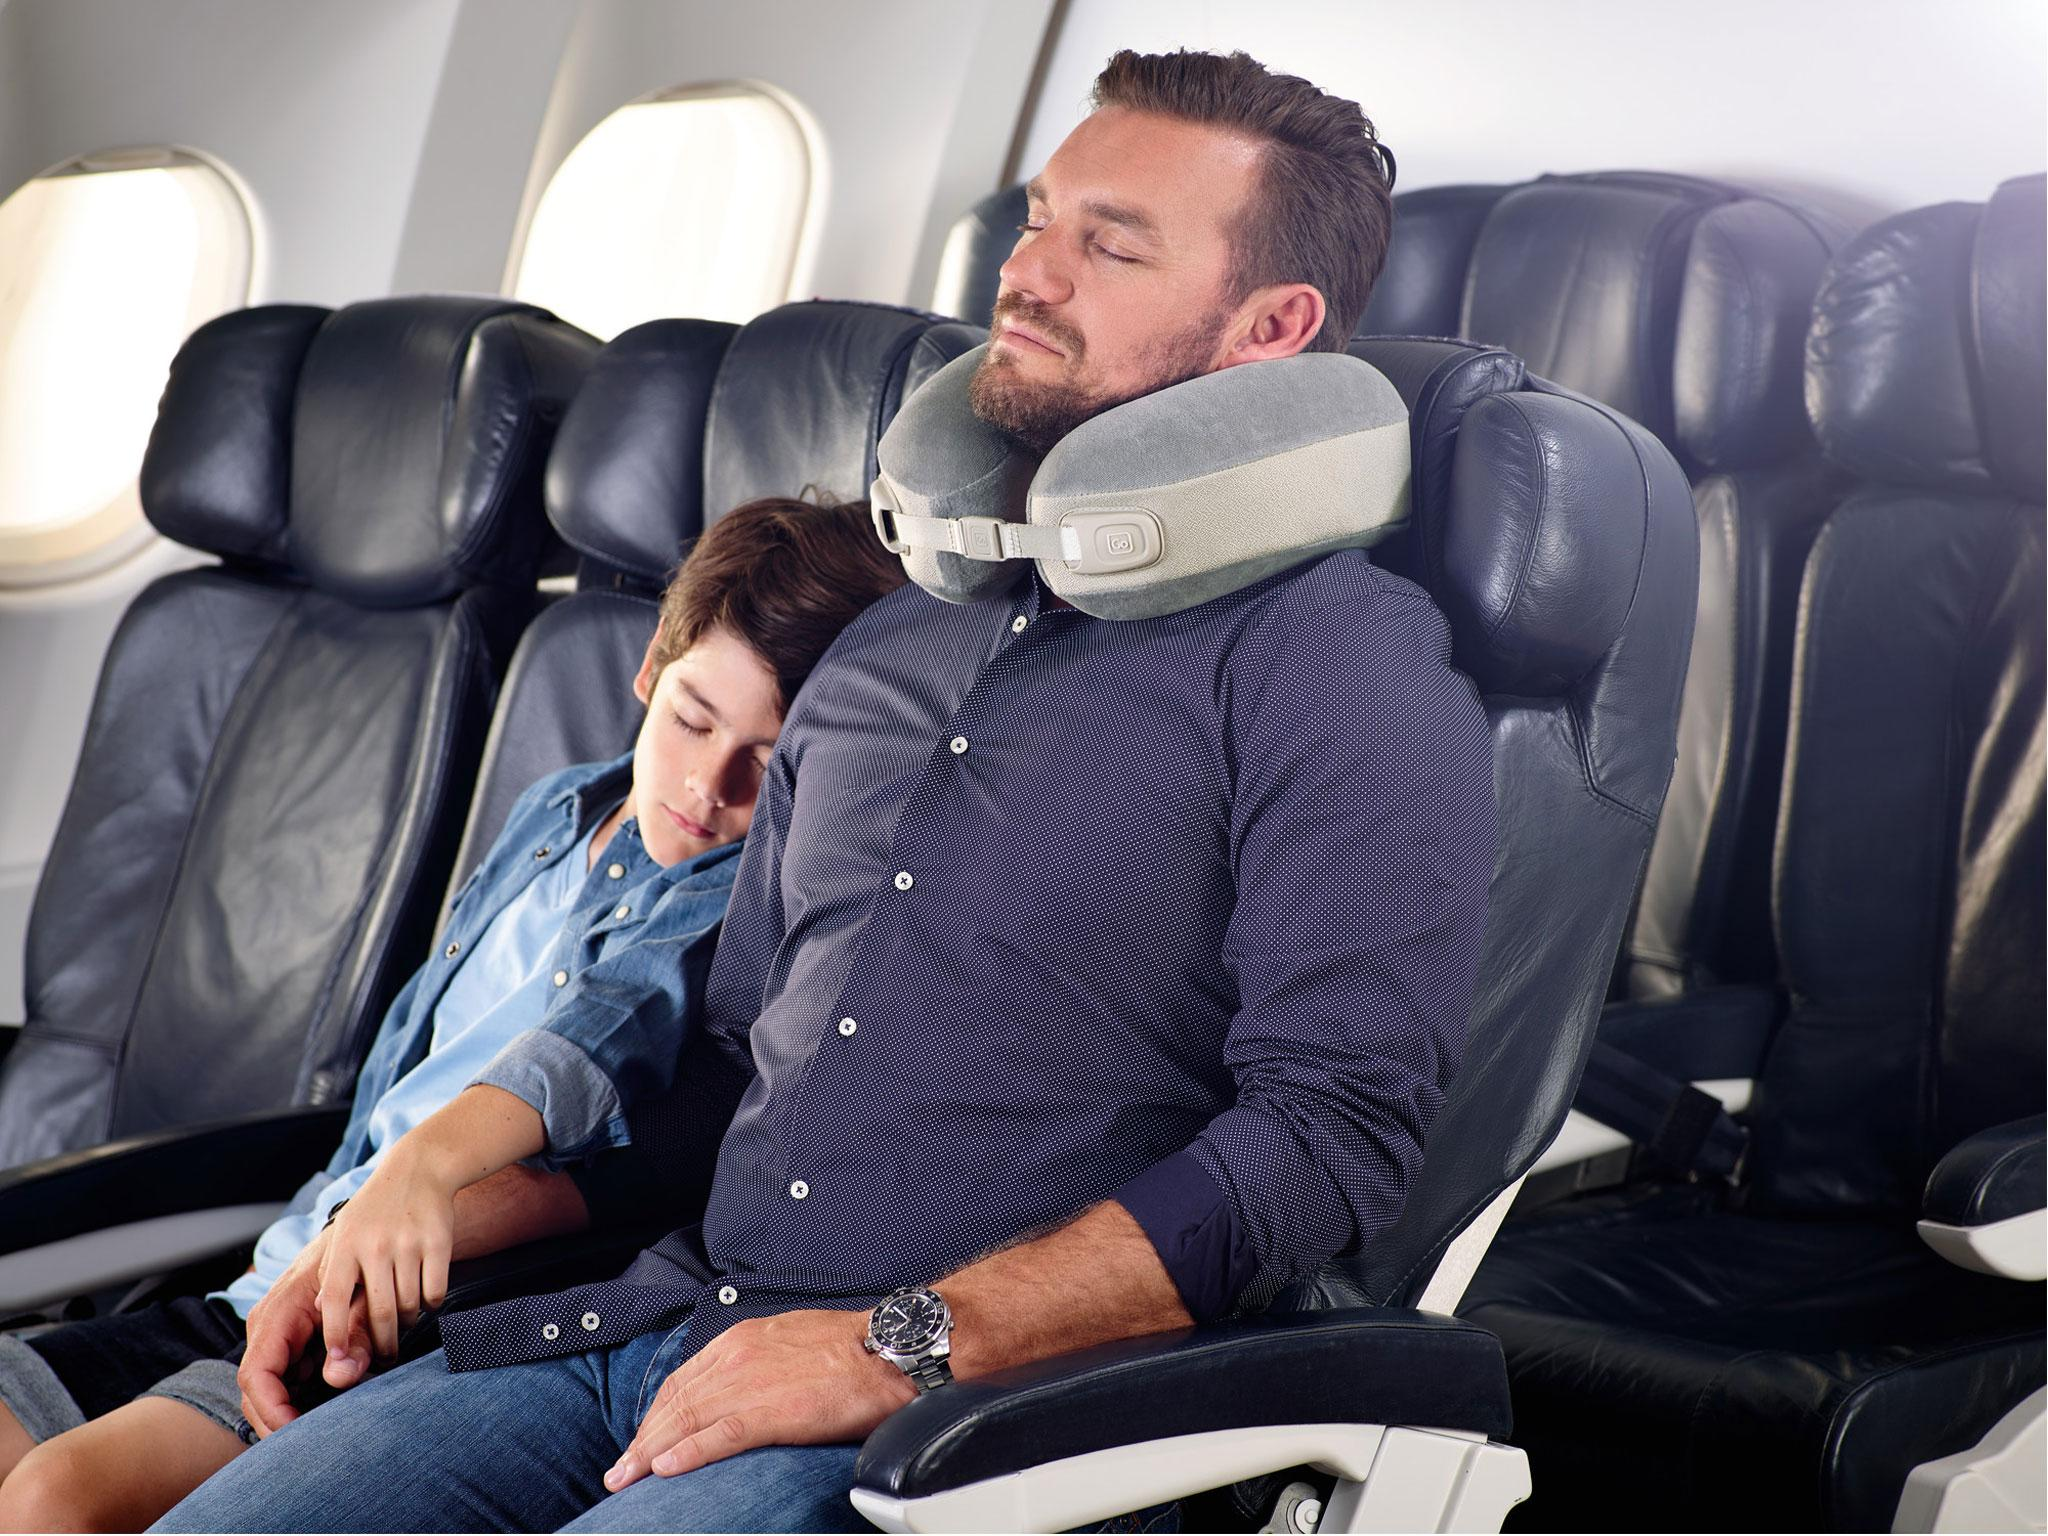 The Travel Pillows